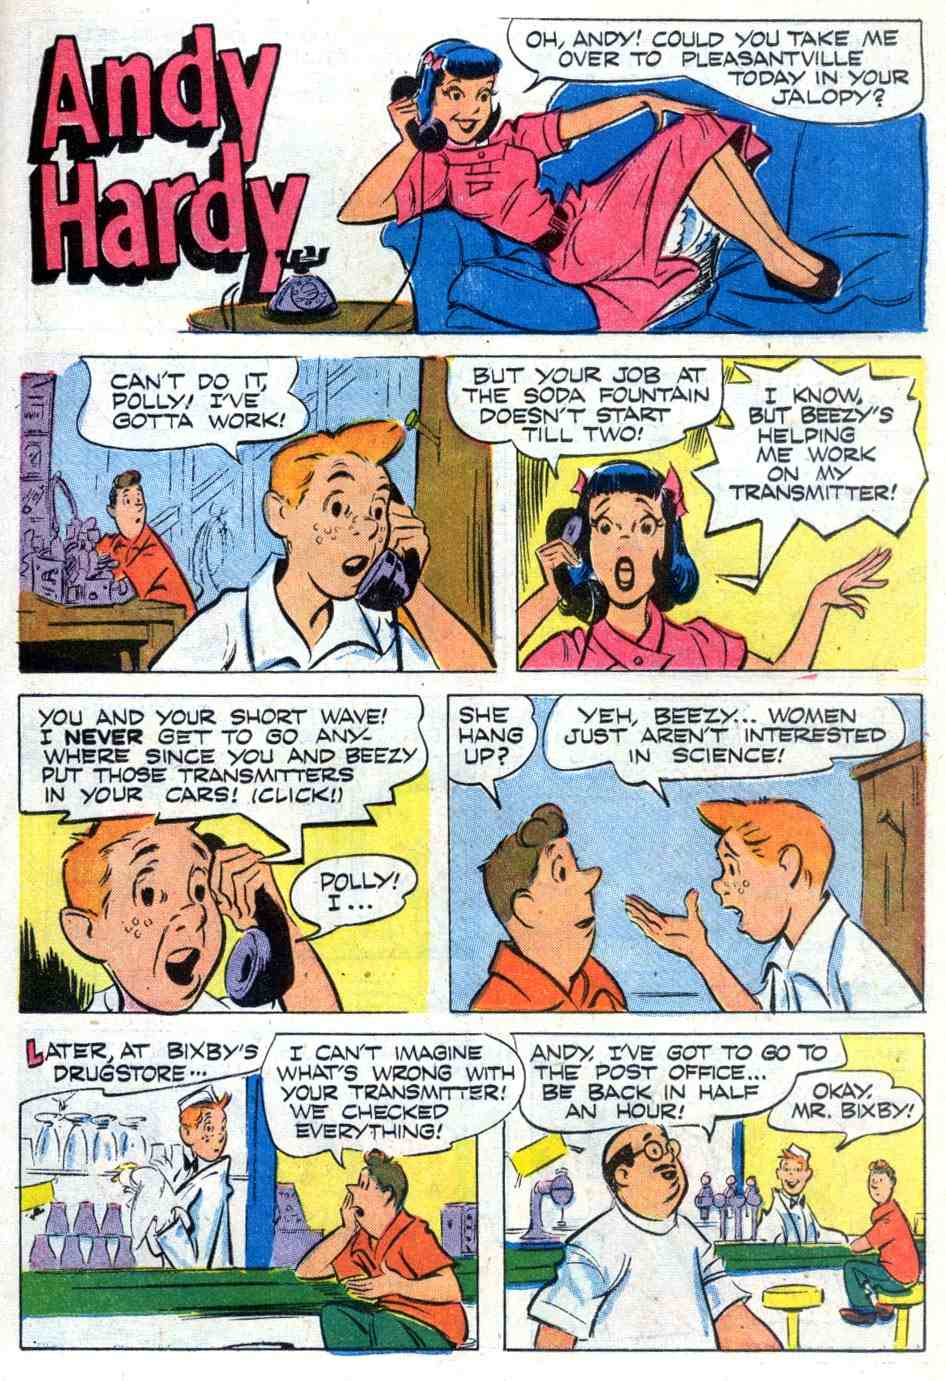 Andy-Hardy-Comic-Strips (15)